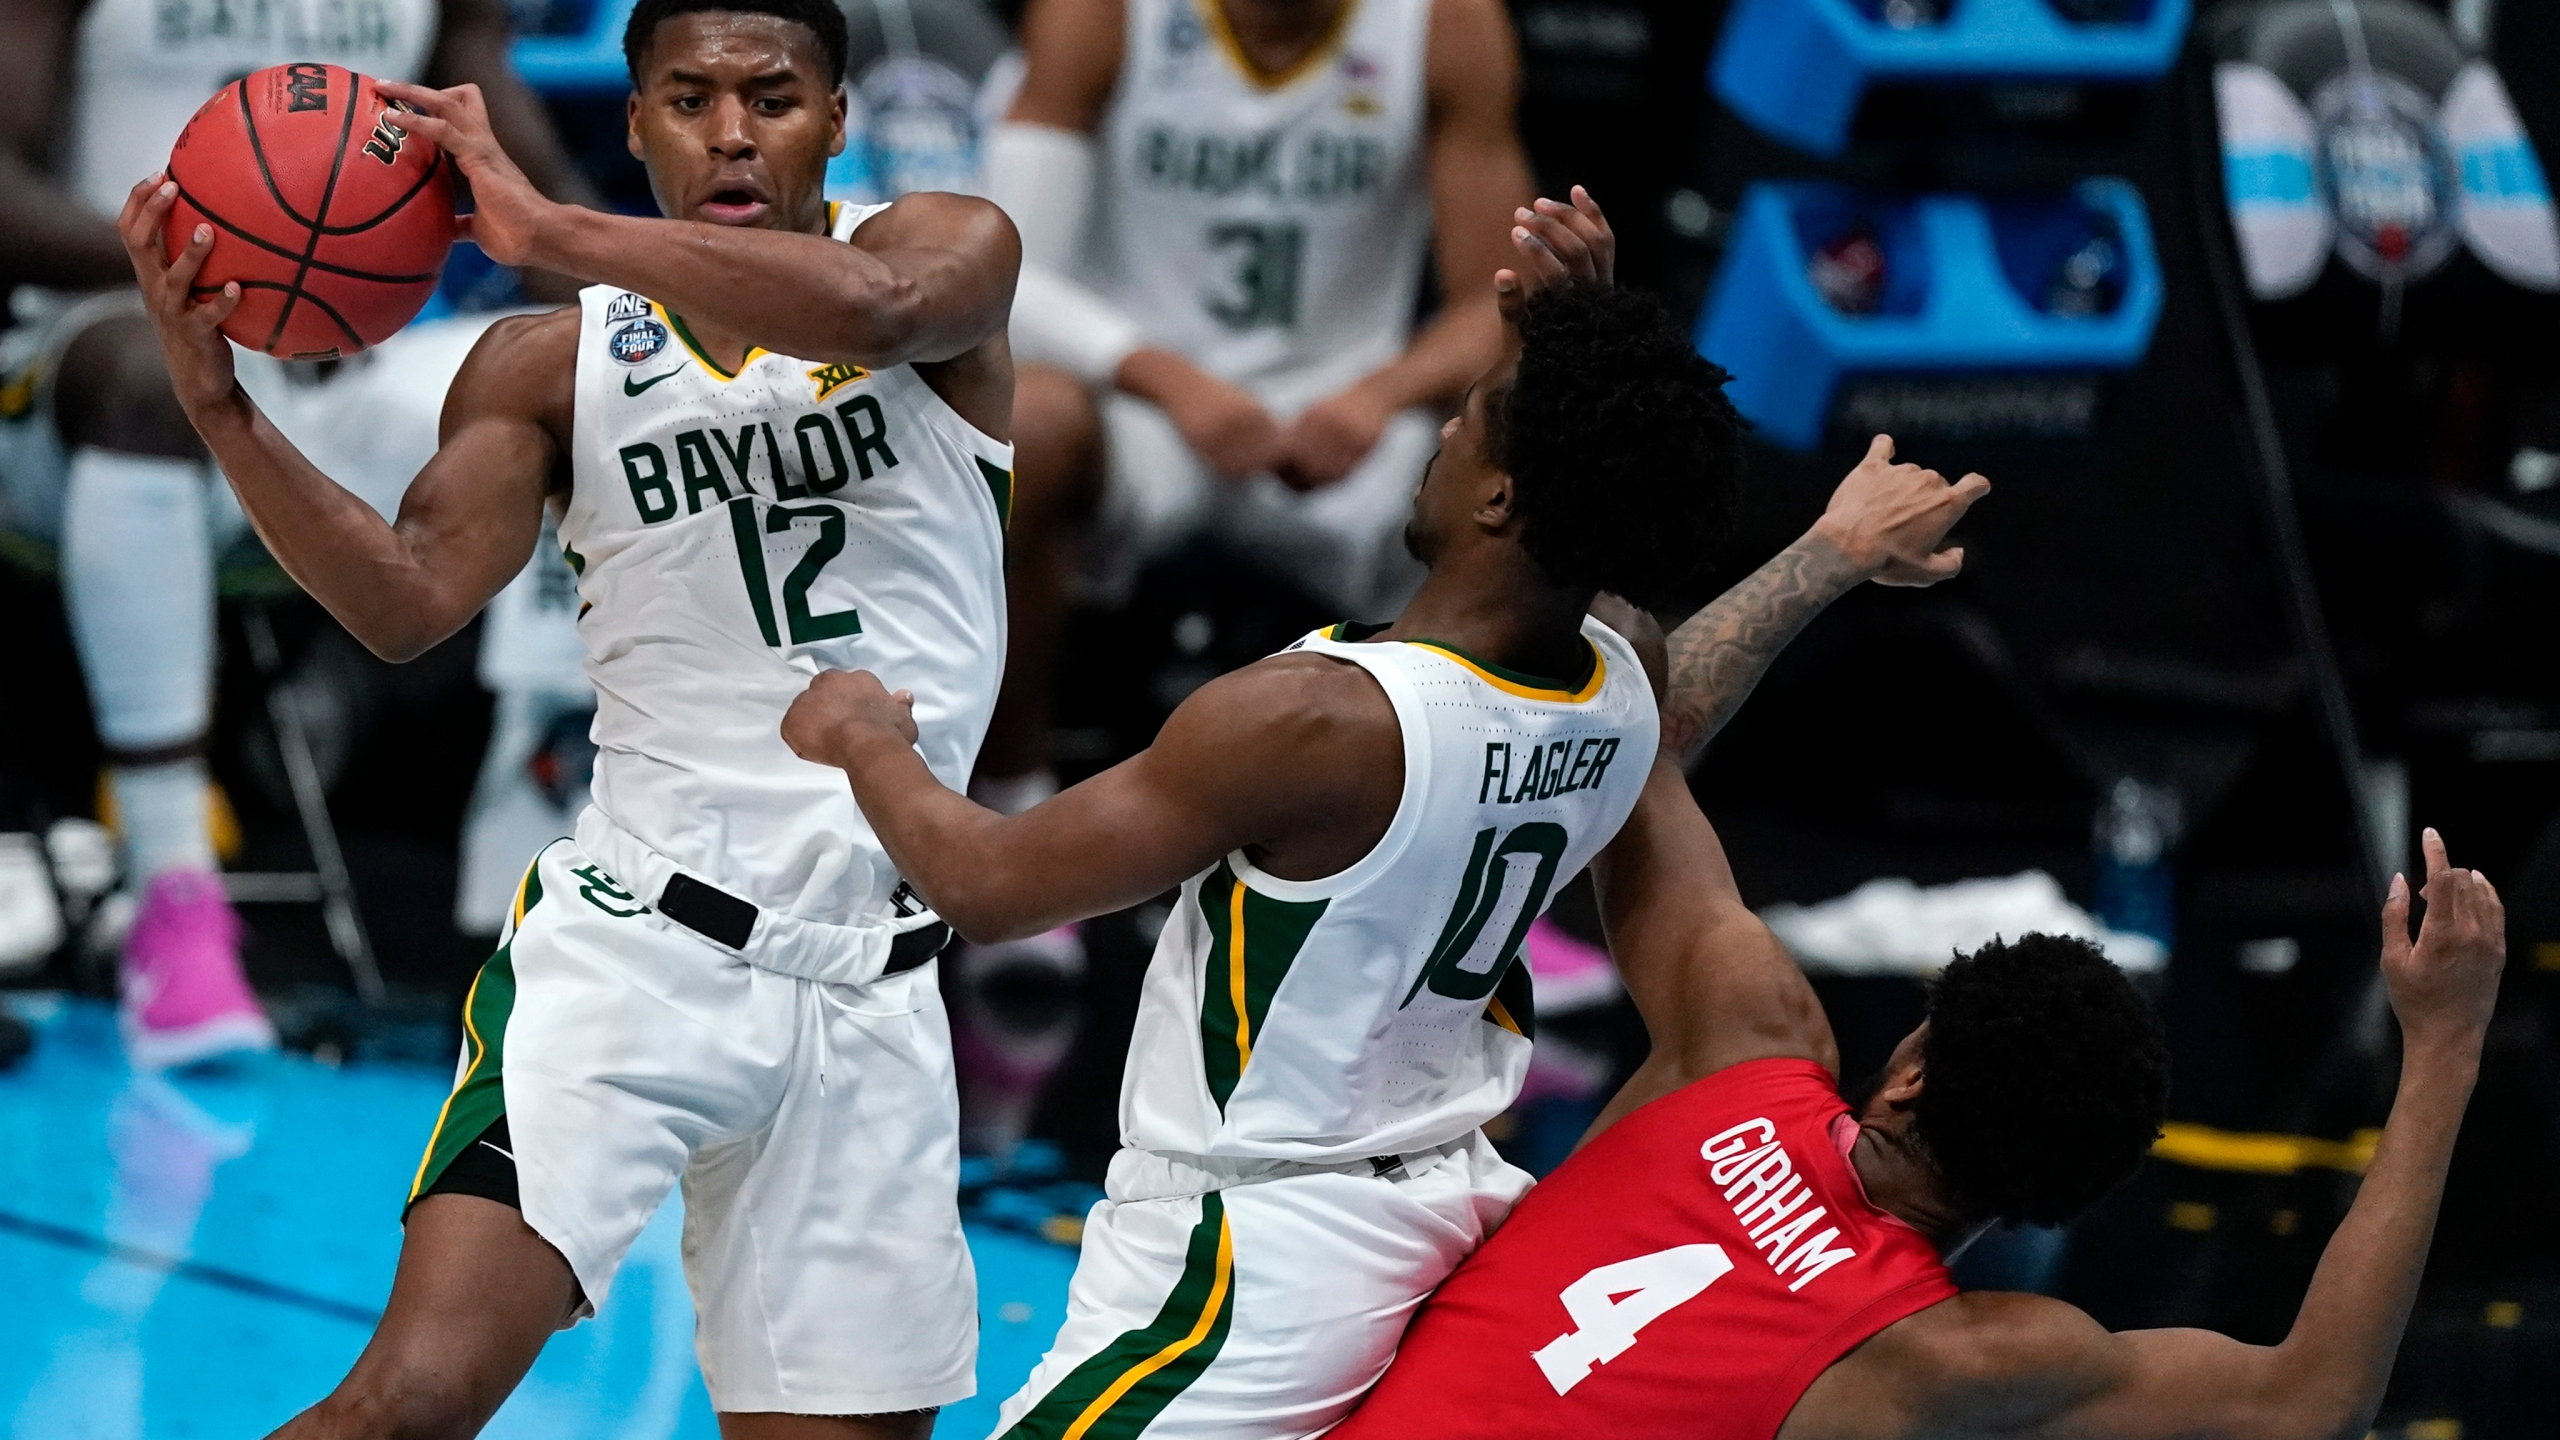 Baylor guard Jared Butler (12) passes over teammate guard Adam Flagler (10) and Houston forward Justin Gorham (4) during the first half of a men's Final Four NCAA college basketball tournament semifinal game, Saturday, April 3, 2021, at Lucas Oil Stadium in Indianapolis. (AP Photo/Michael Conroy)